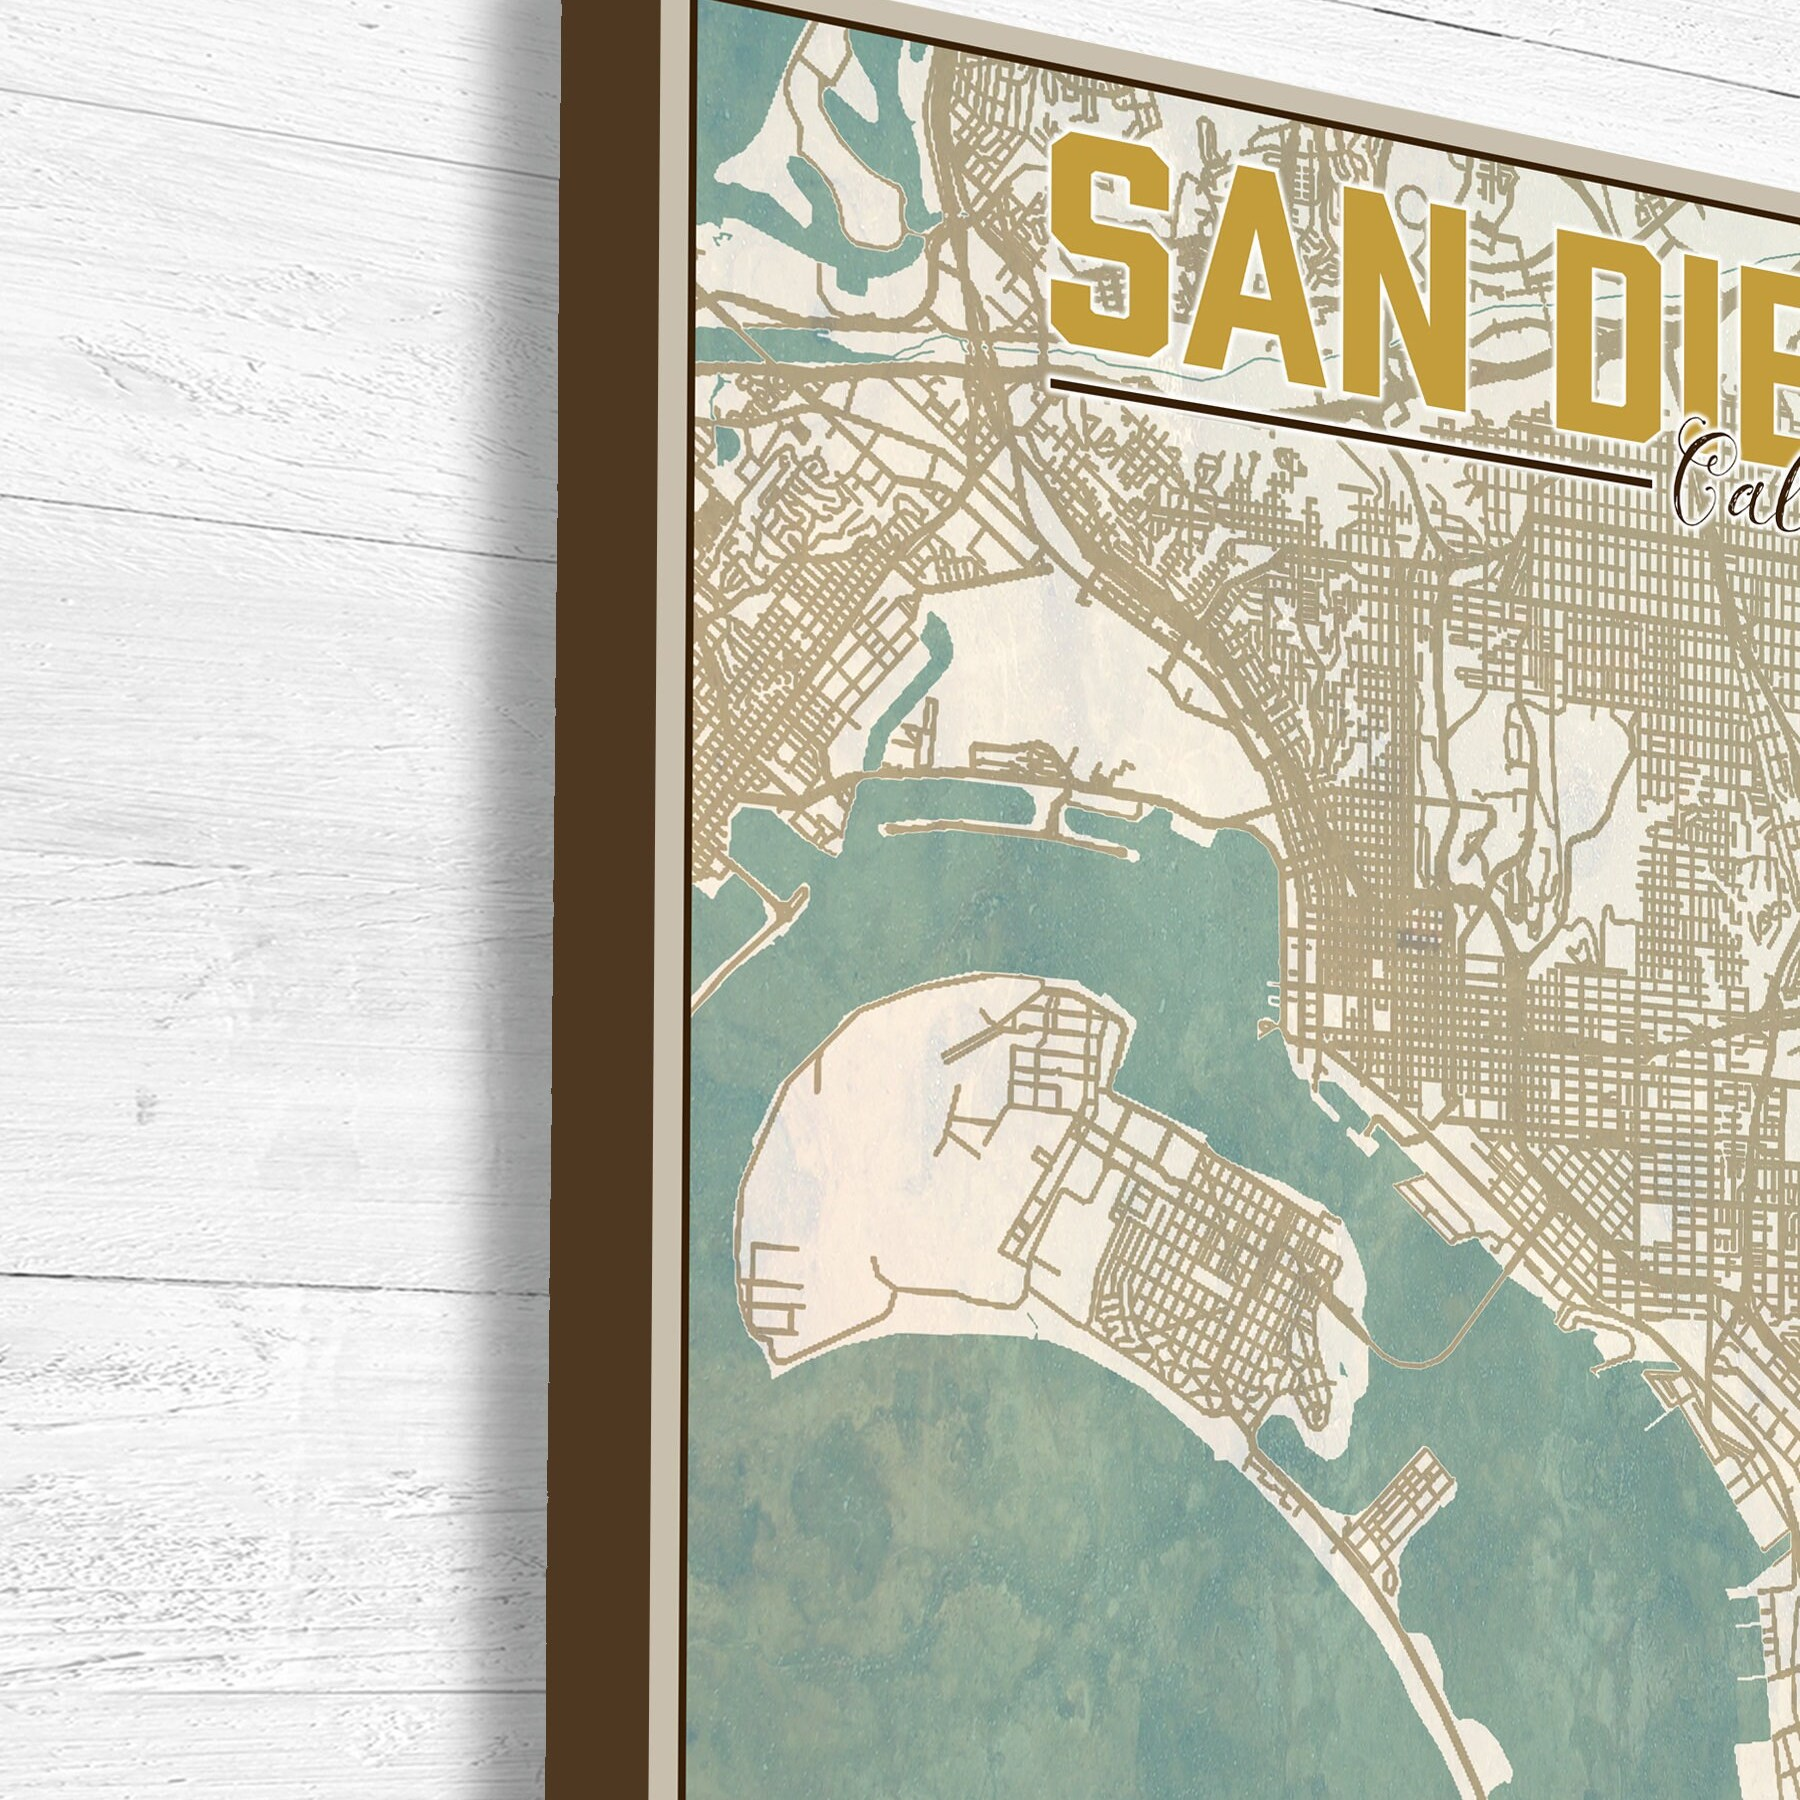 HD Decor Images » San Diego  California  San Diego City Map  Map of San Diego  Map     San Diego  California  San Diego City Map  Map of San Diego  Map Print  Vintage  Map  City Illustration  City Map  Street Map  Vintage Art